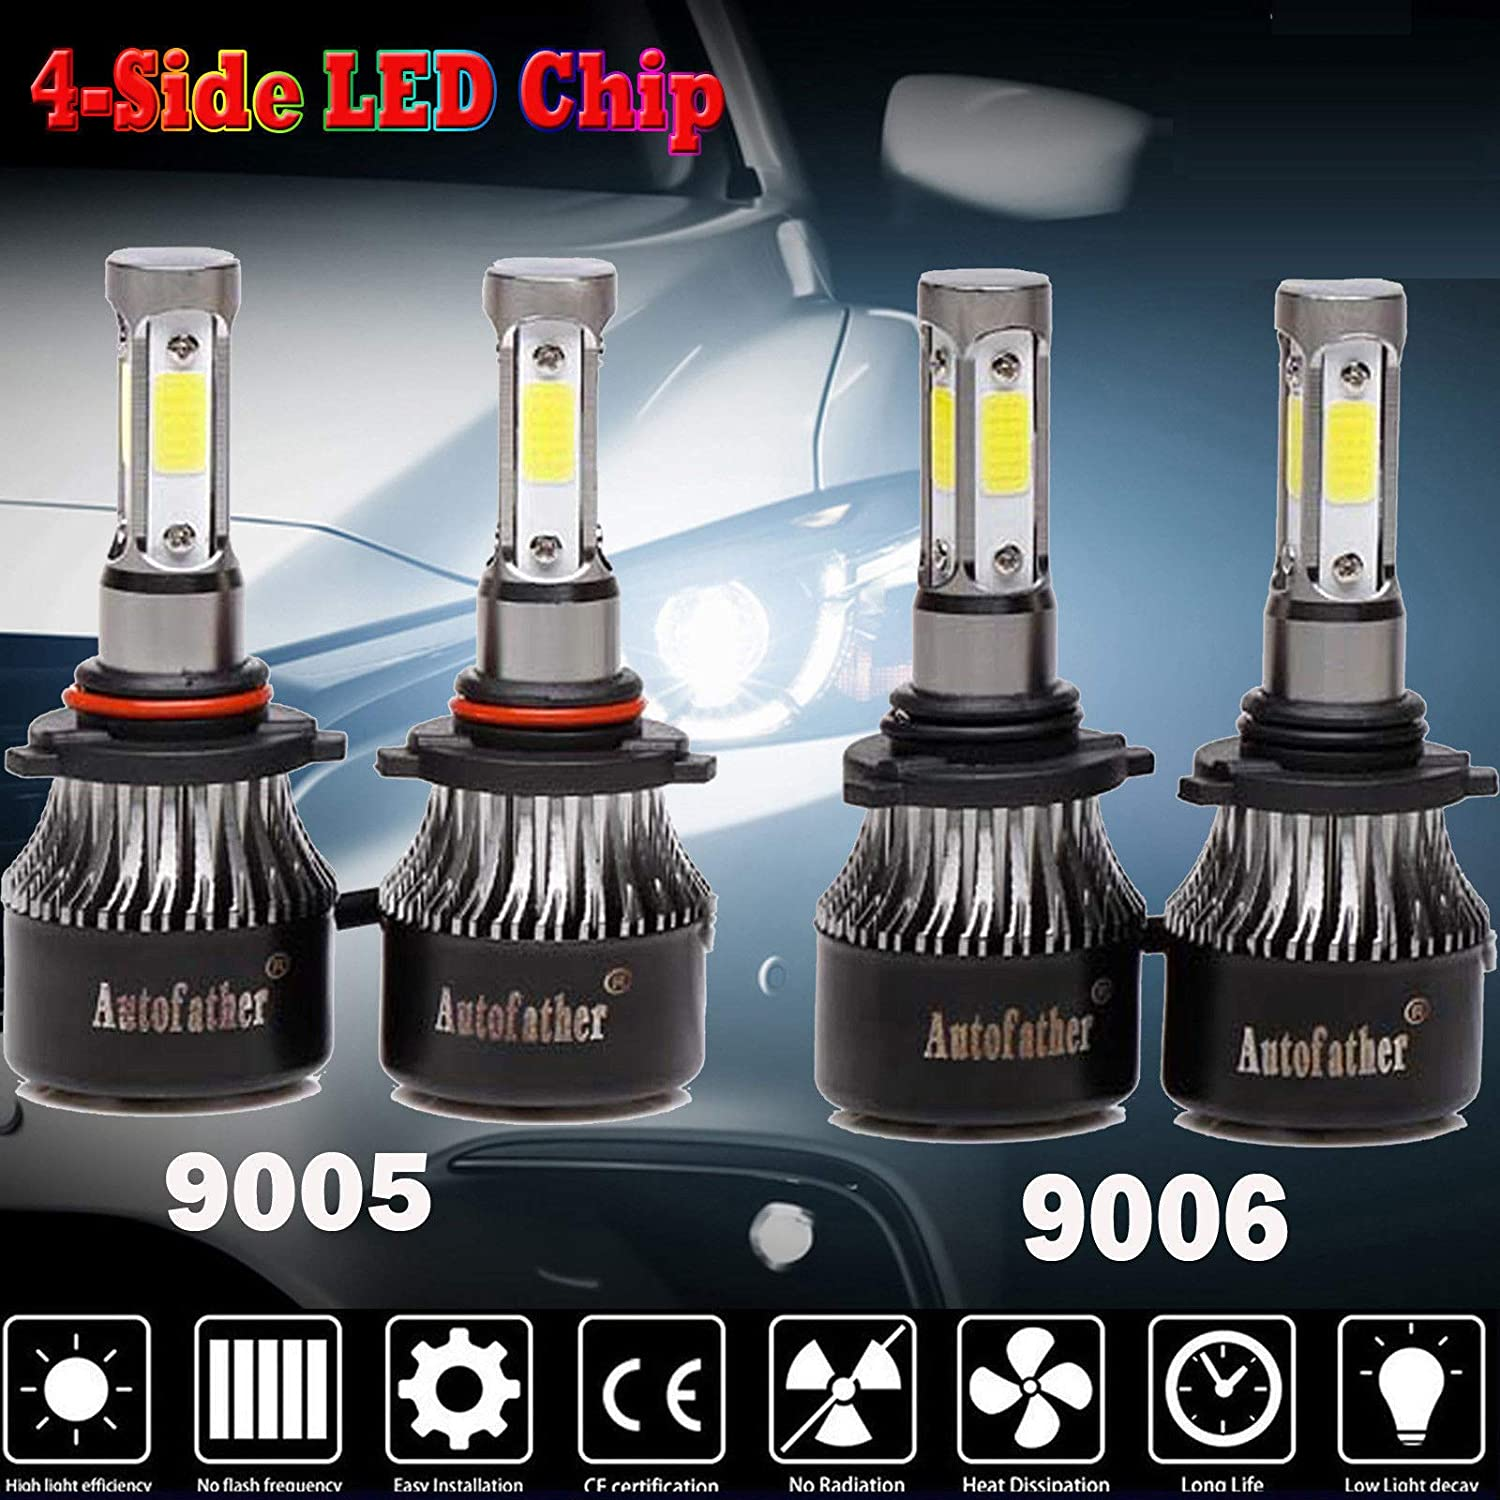 H1 LED Headlight Bulbs White 6000K for Trucks Cars Lamps DRL Driving Replacement Bulb Conversion Kit Upgrade High Low Beam Plug Fan Super Bright COB Chips 12V 24V 80W 10000LM 1 Year Warranty【1797】